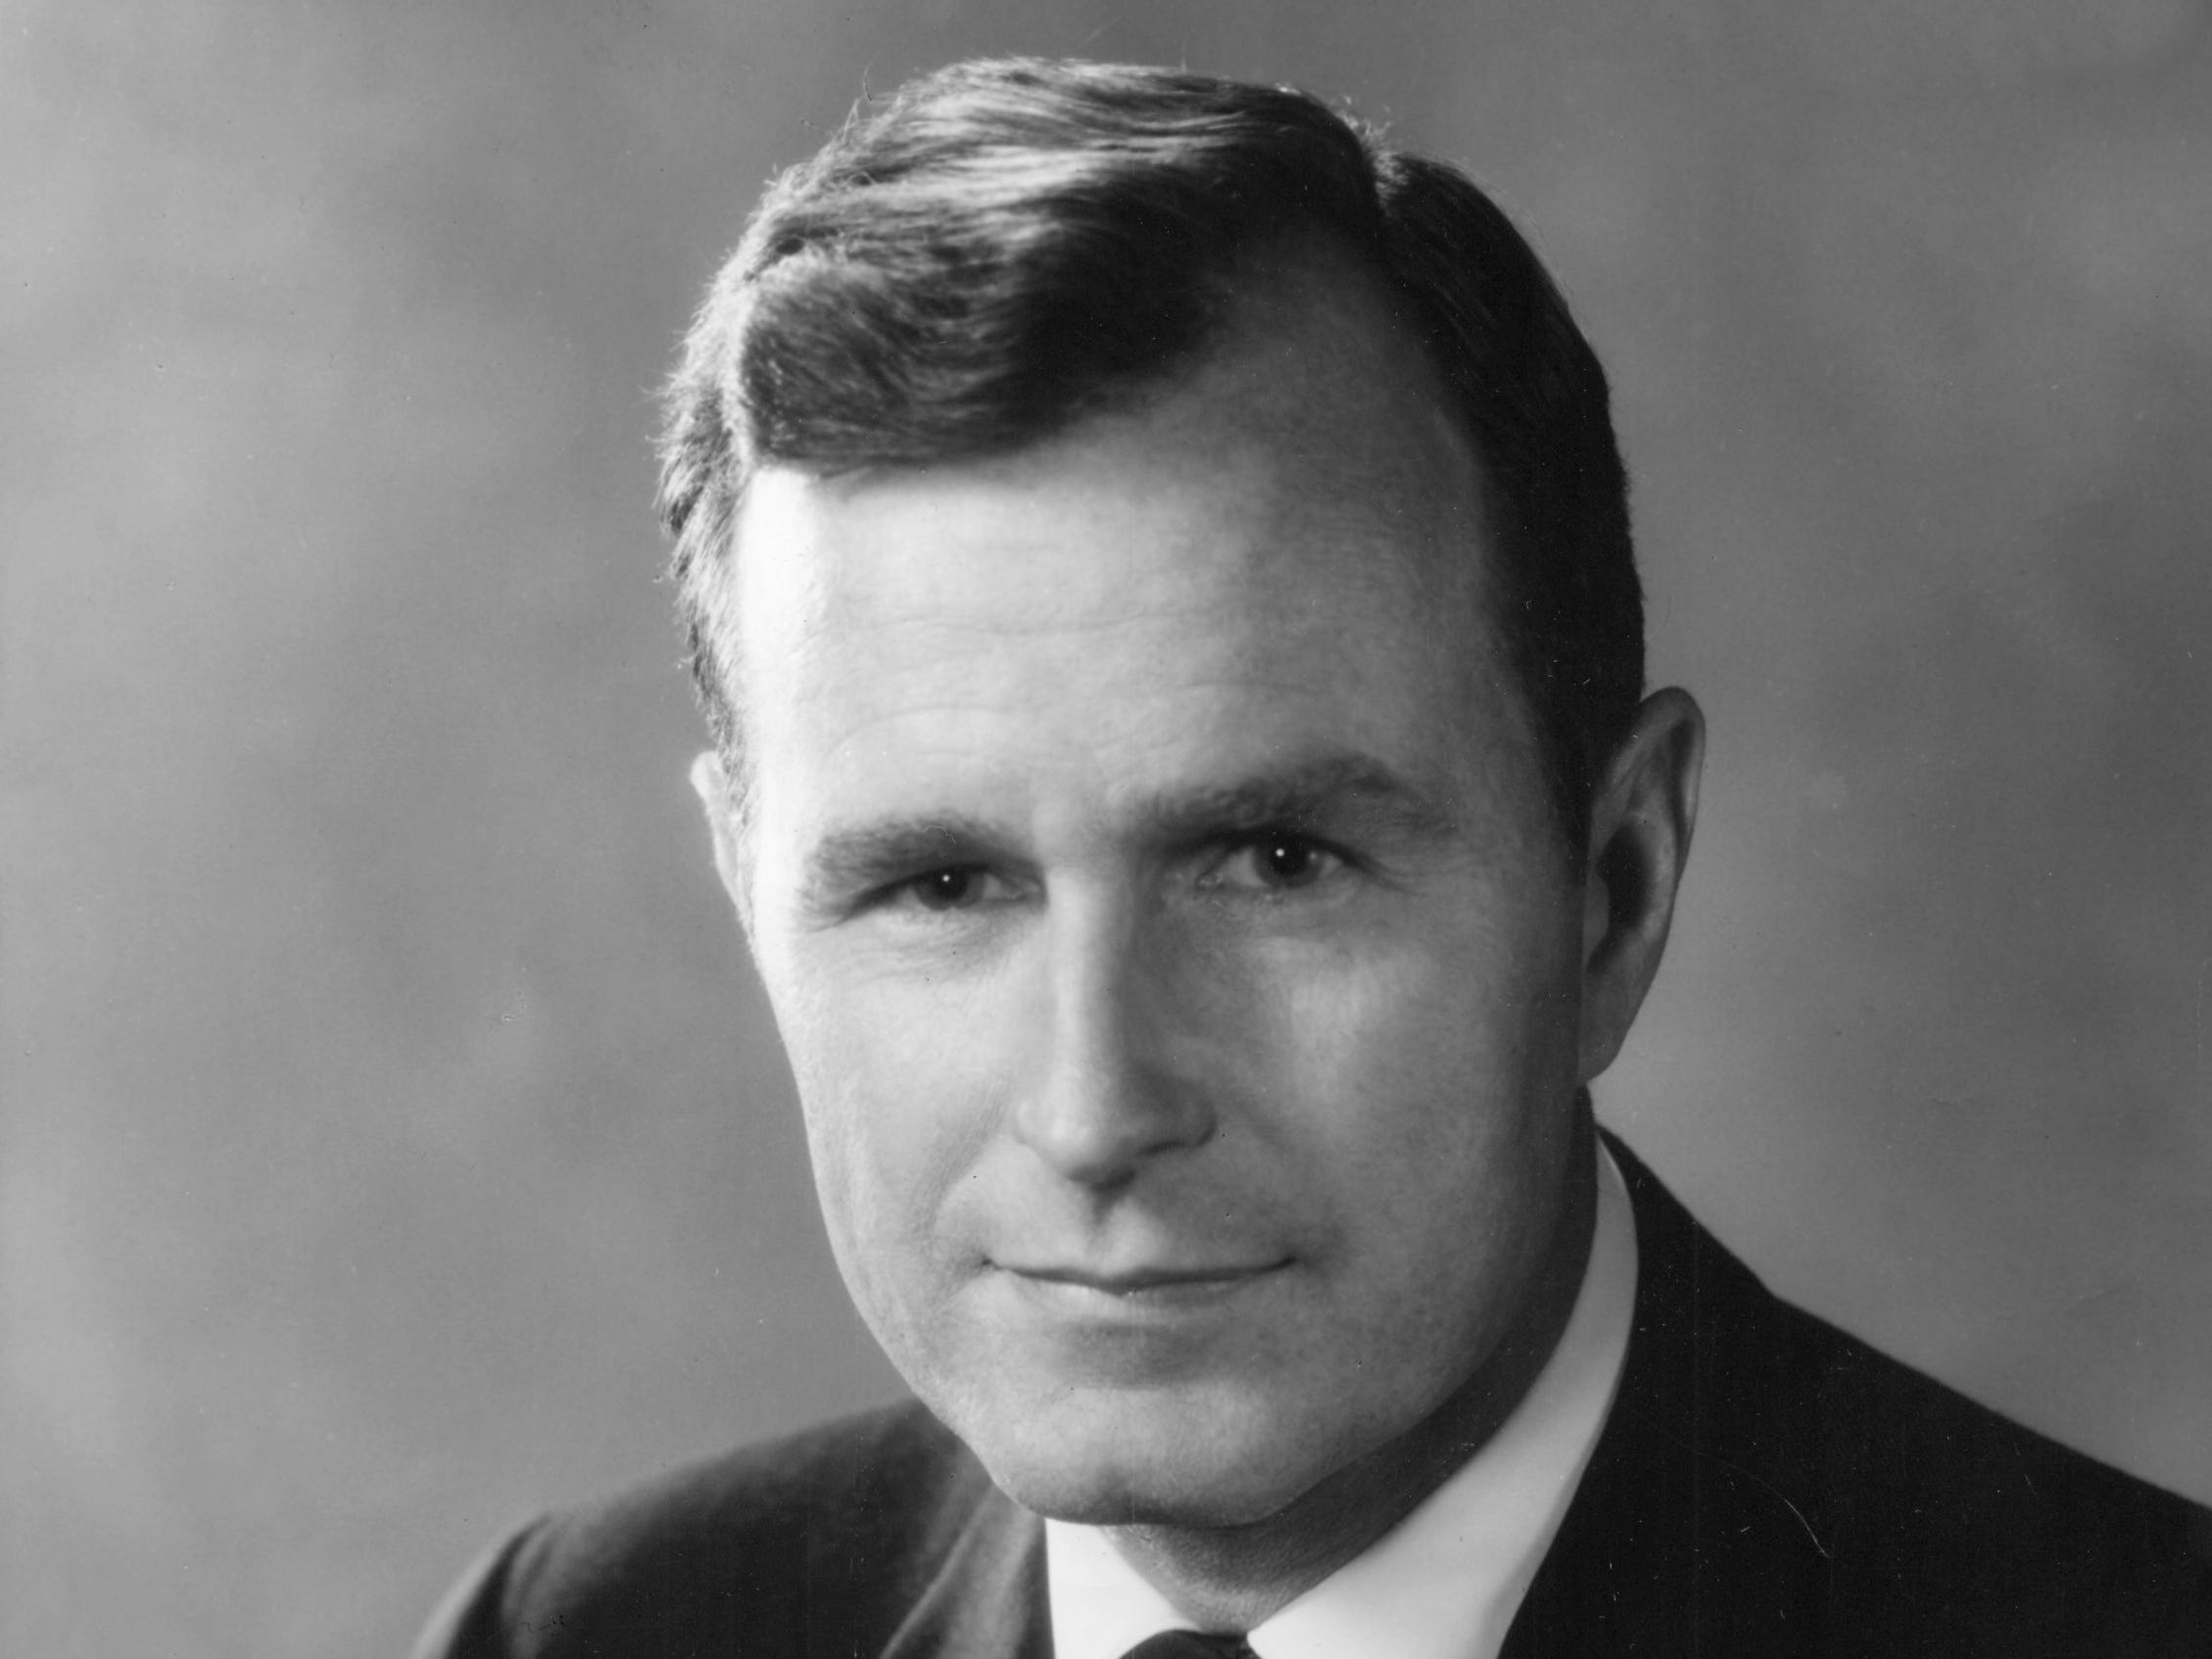 A handout photograph of an early portrait of George H. W. Bush.